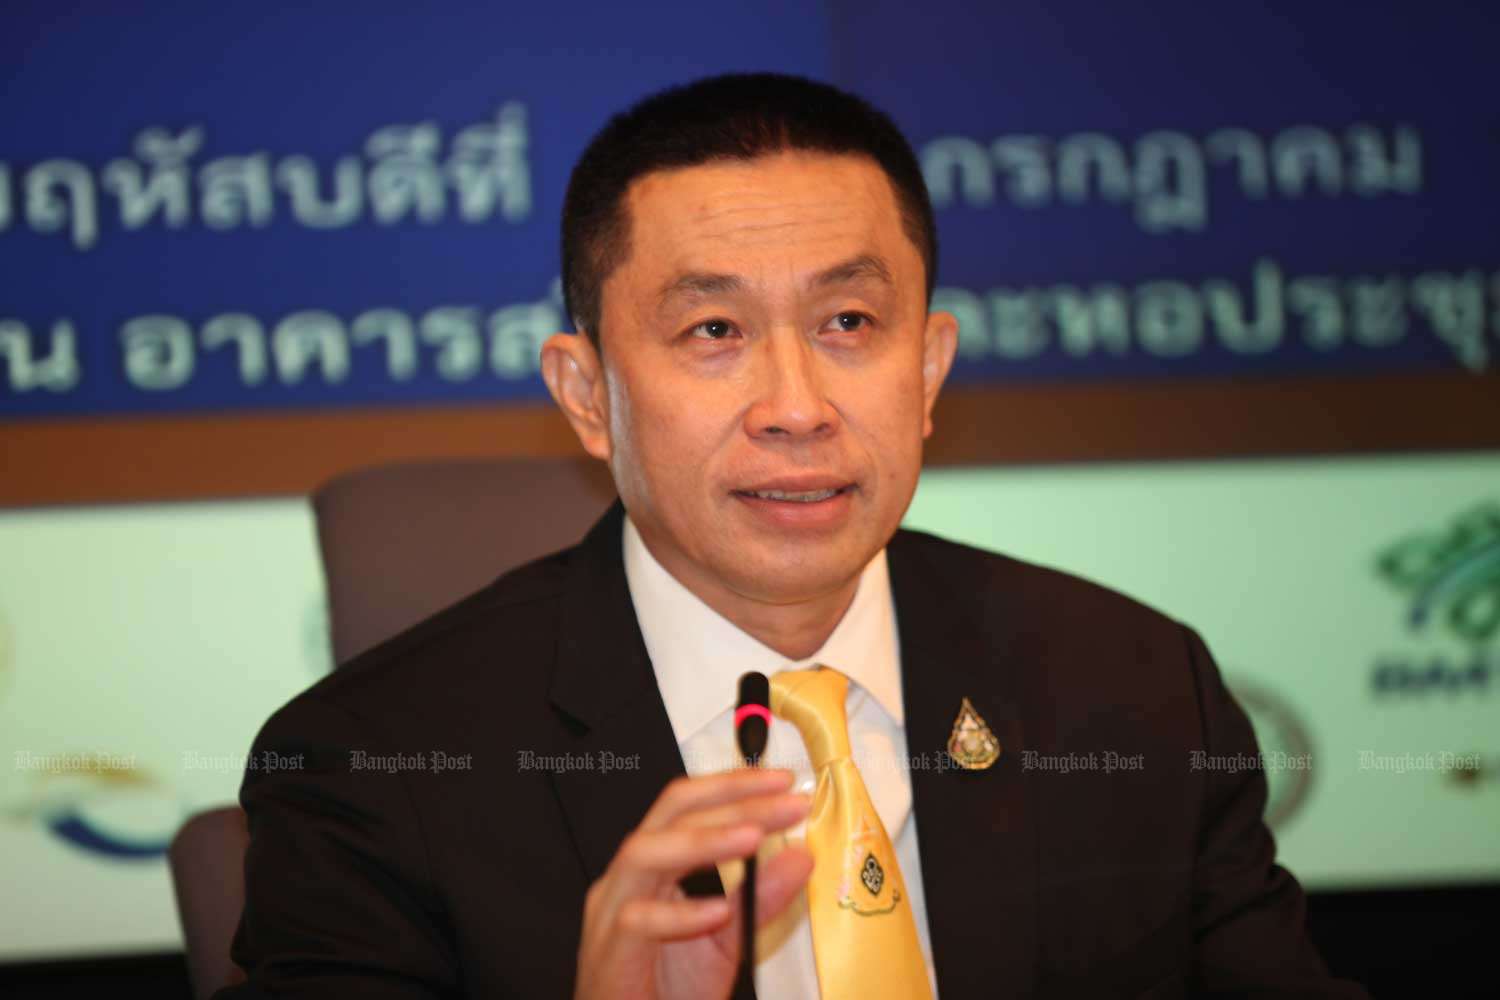 Transport Minister Saksayam Chidchob is moving ahead with the mega-infrastructure investment projects started by the previous government. (Photo by Apichart Jinakul)